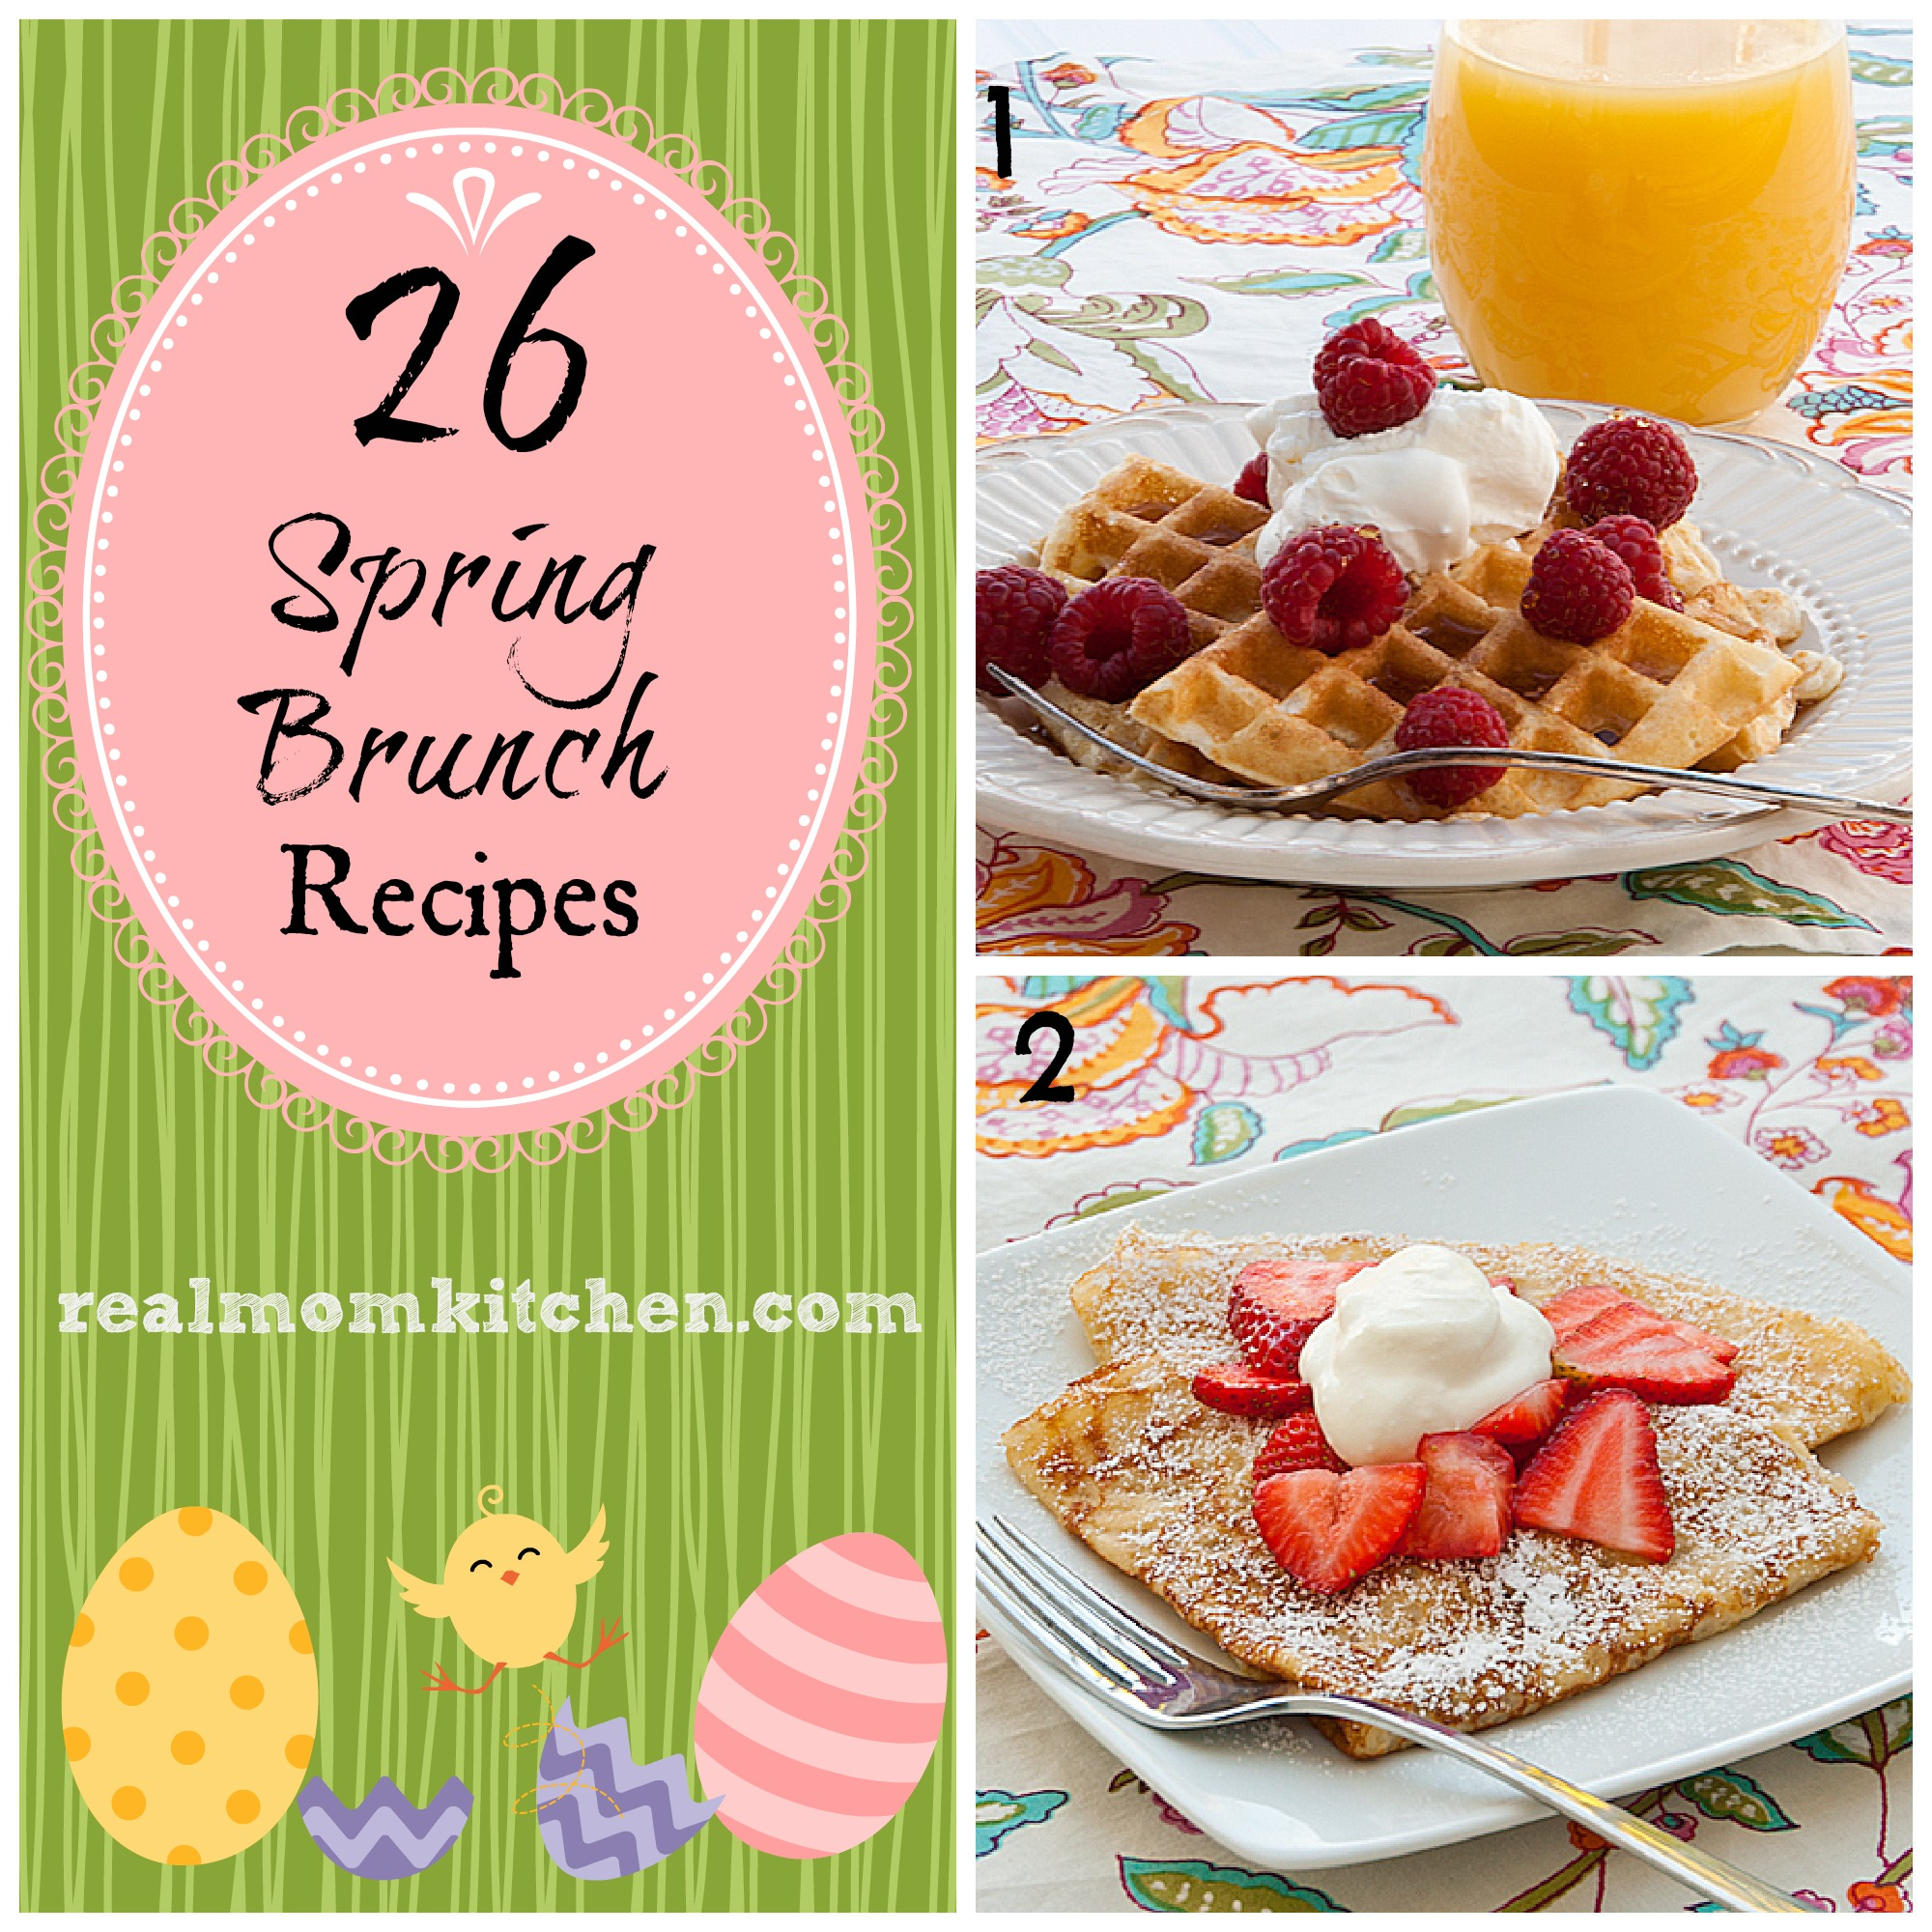 26 Spring Brunch Recipes